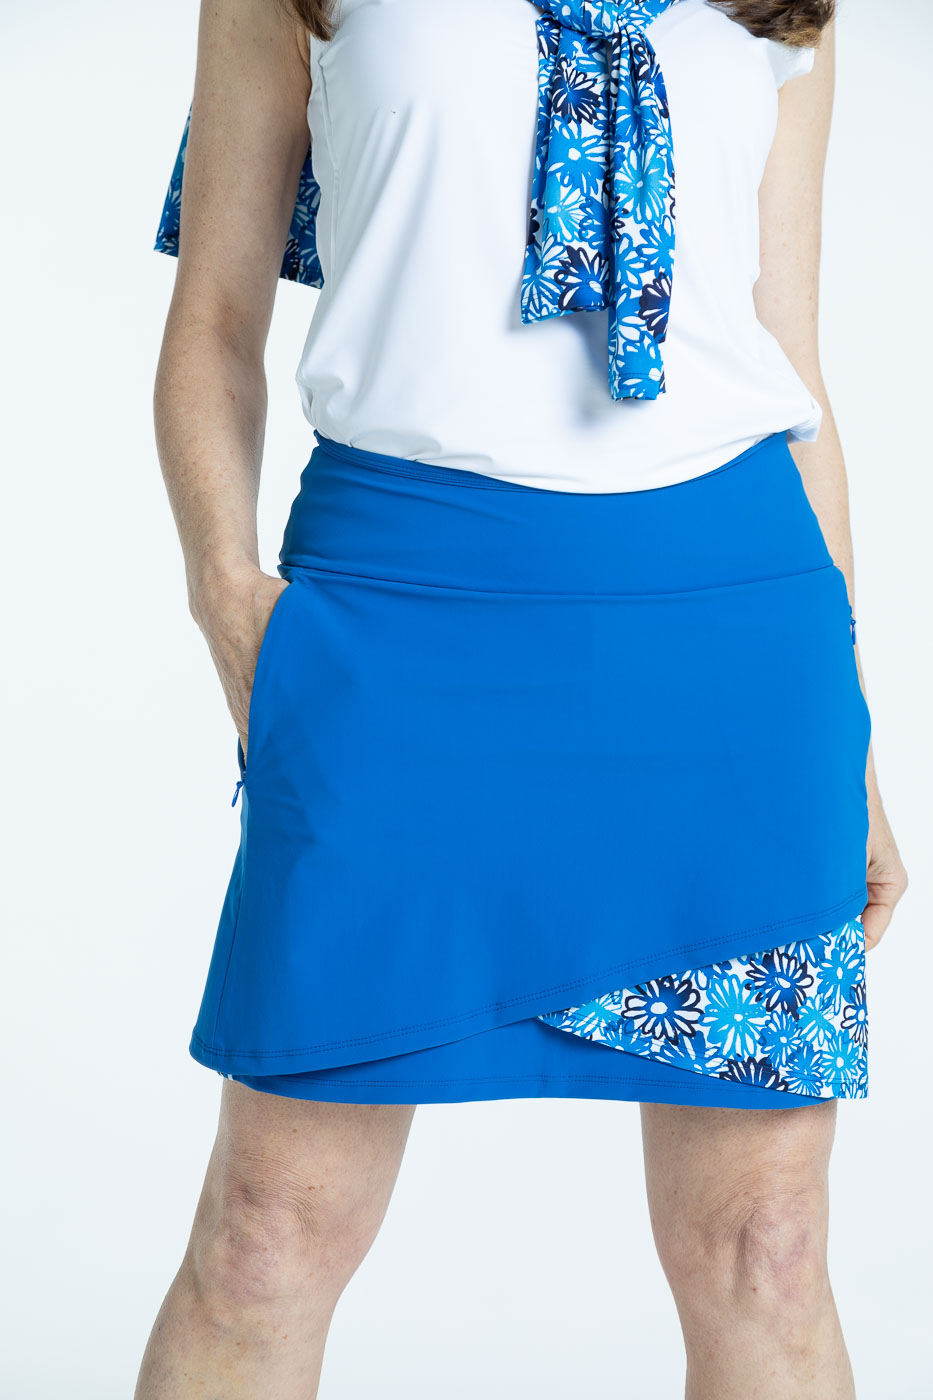 Closer front view of woman wearing a blueberry blue Wrap it Up golf skort and a white/white Keep it Covered sleeveless golf top